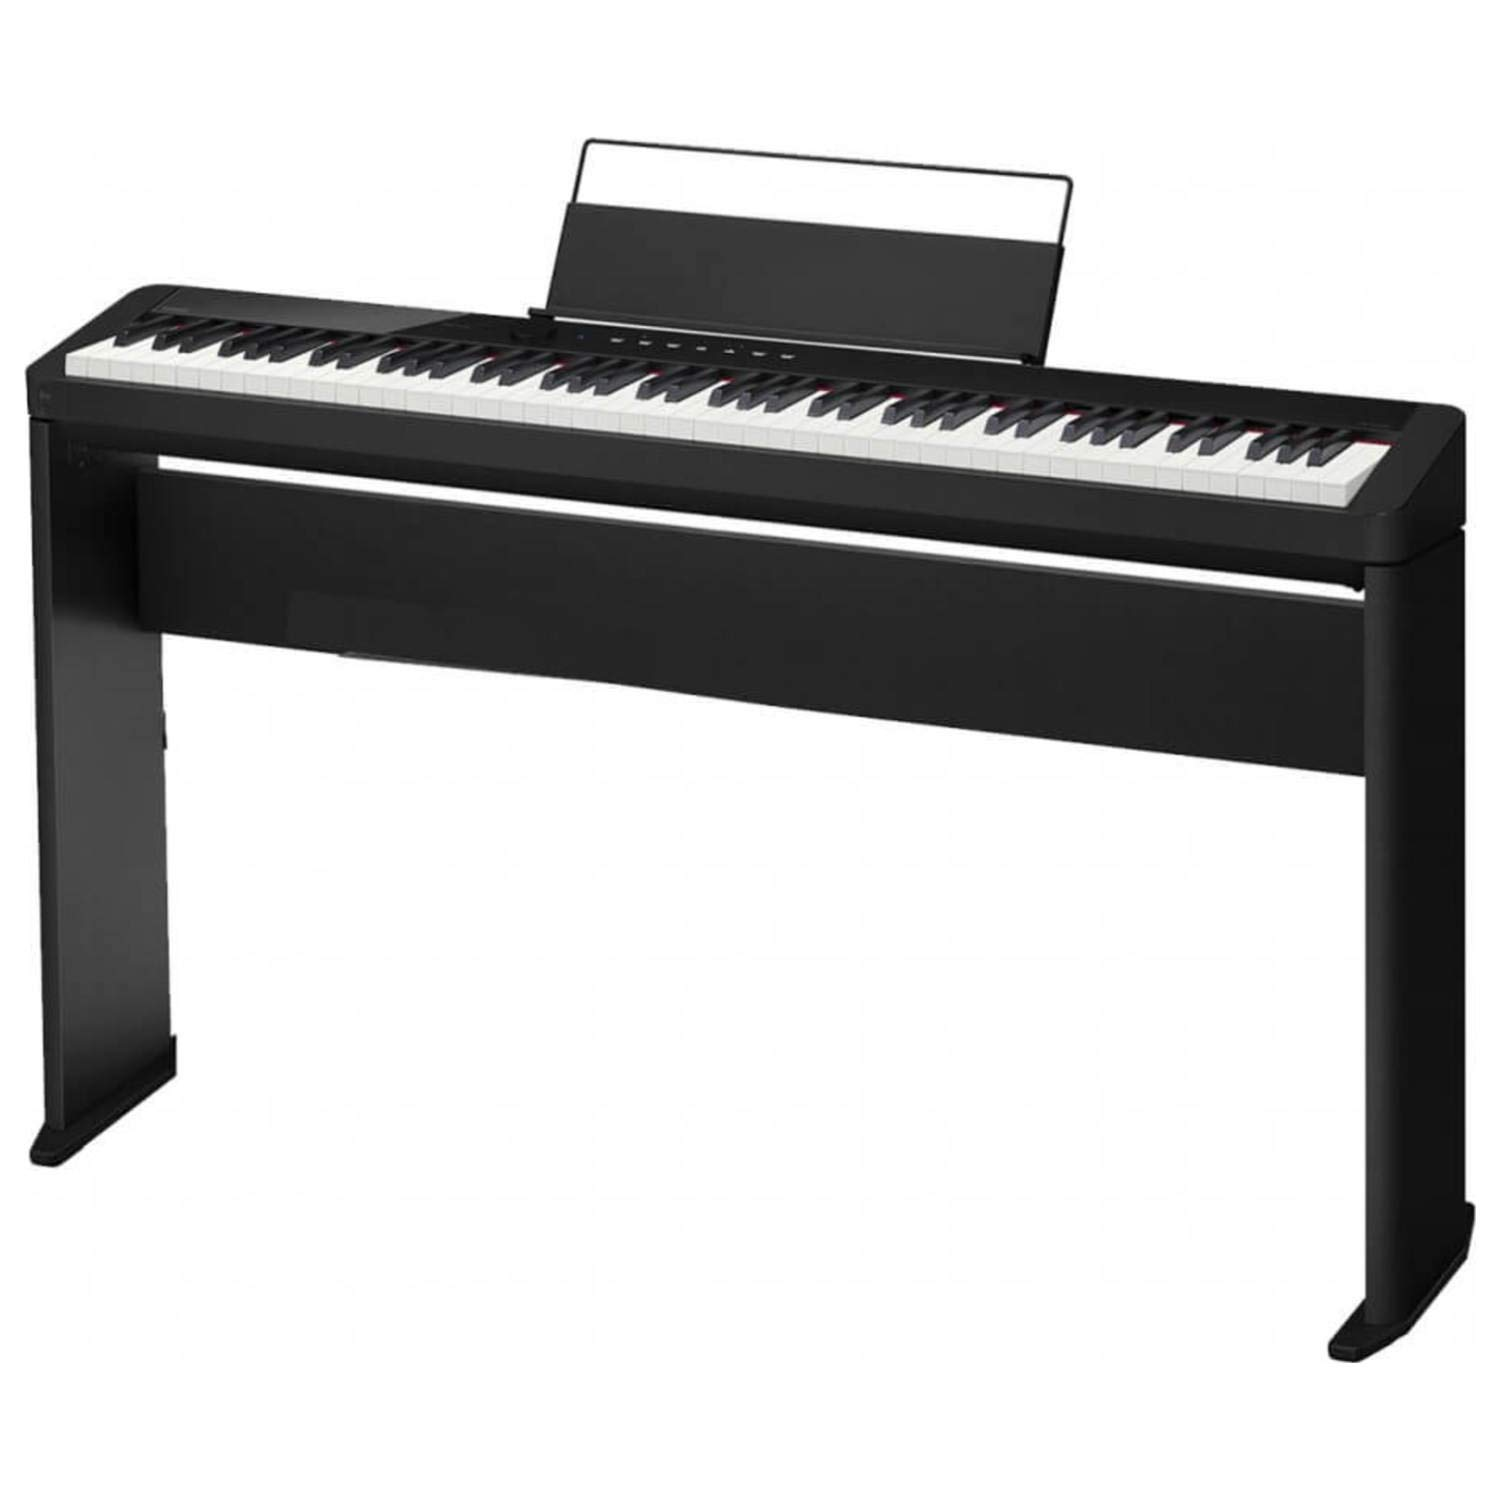 Casio Privia PX-S1000 Digital Piano - Black With Free Furniture Style Stand (Casio CS68) by Casio